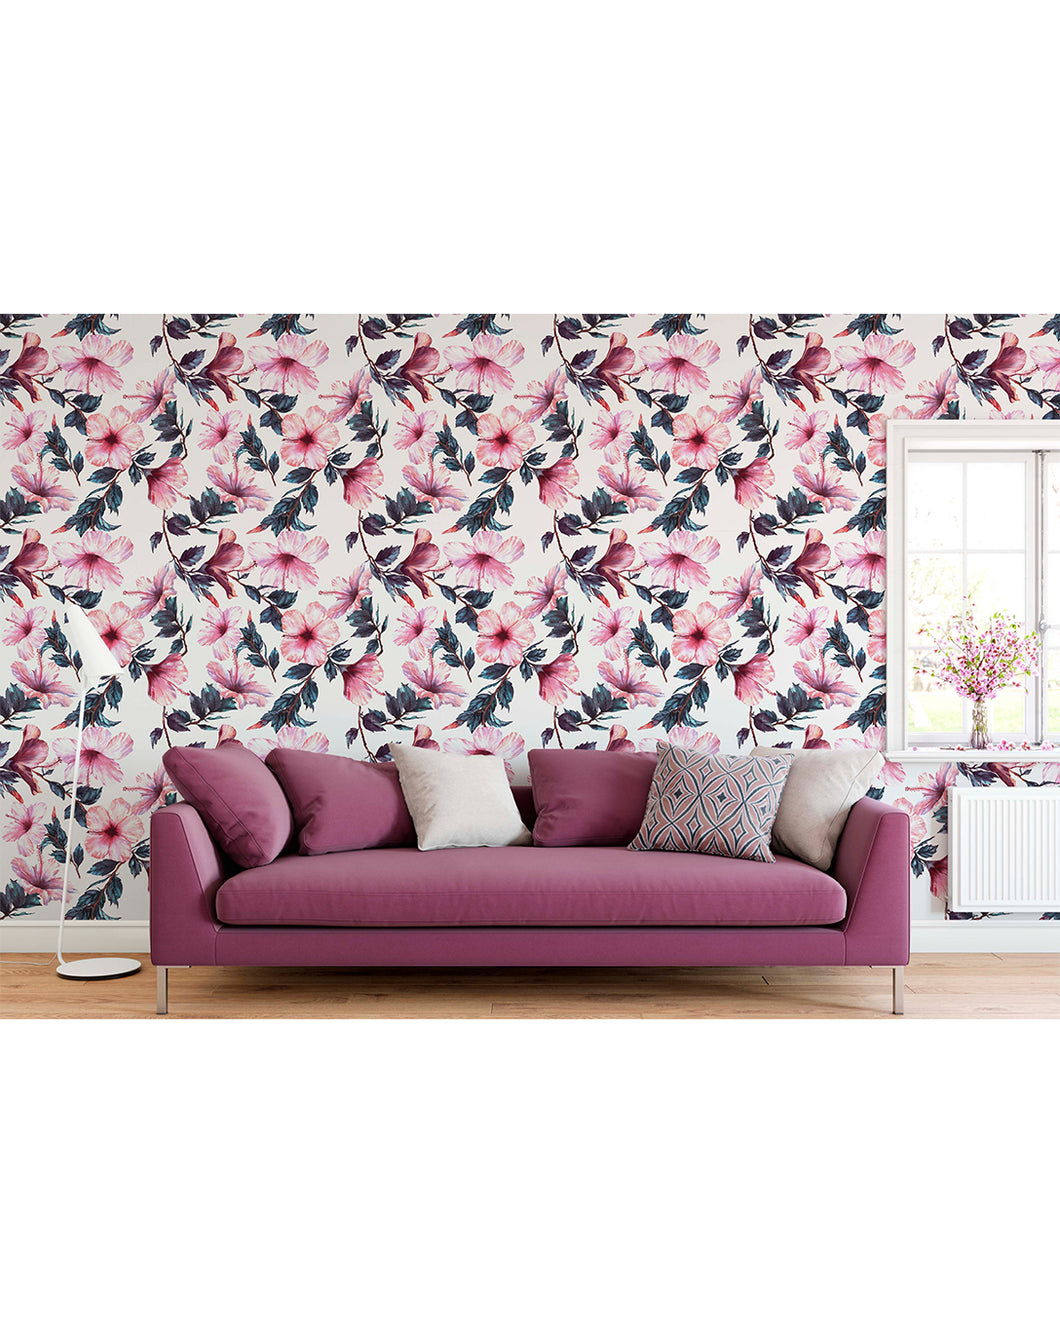 Self Adhesive Removable Wallpaper Floral Pink Hibiscus Flowers